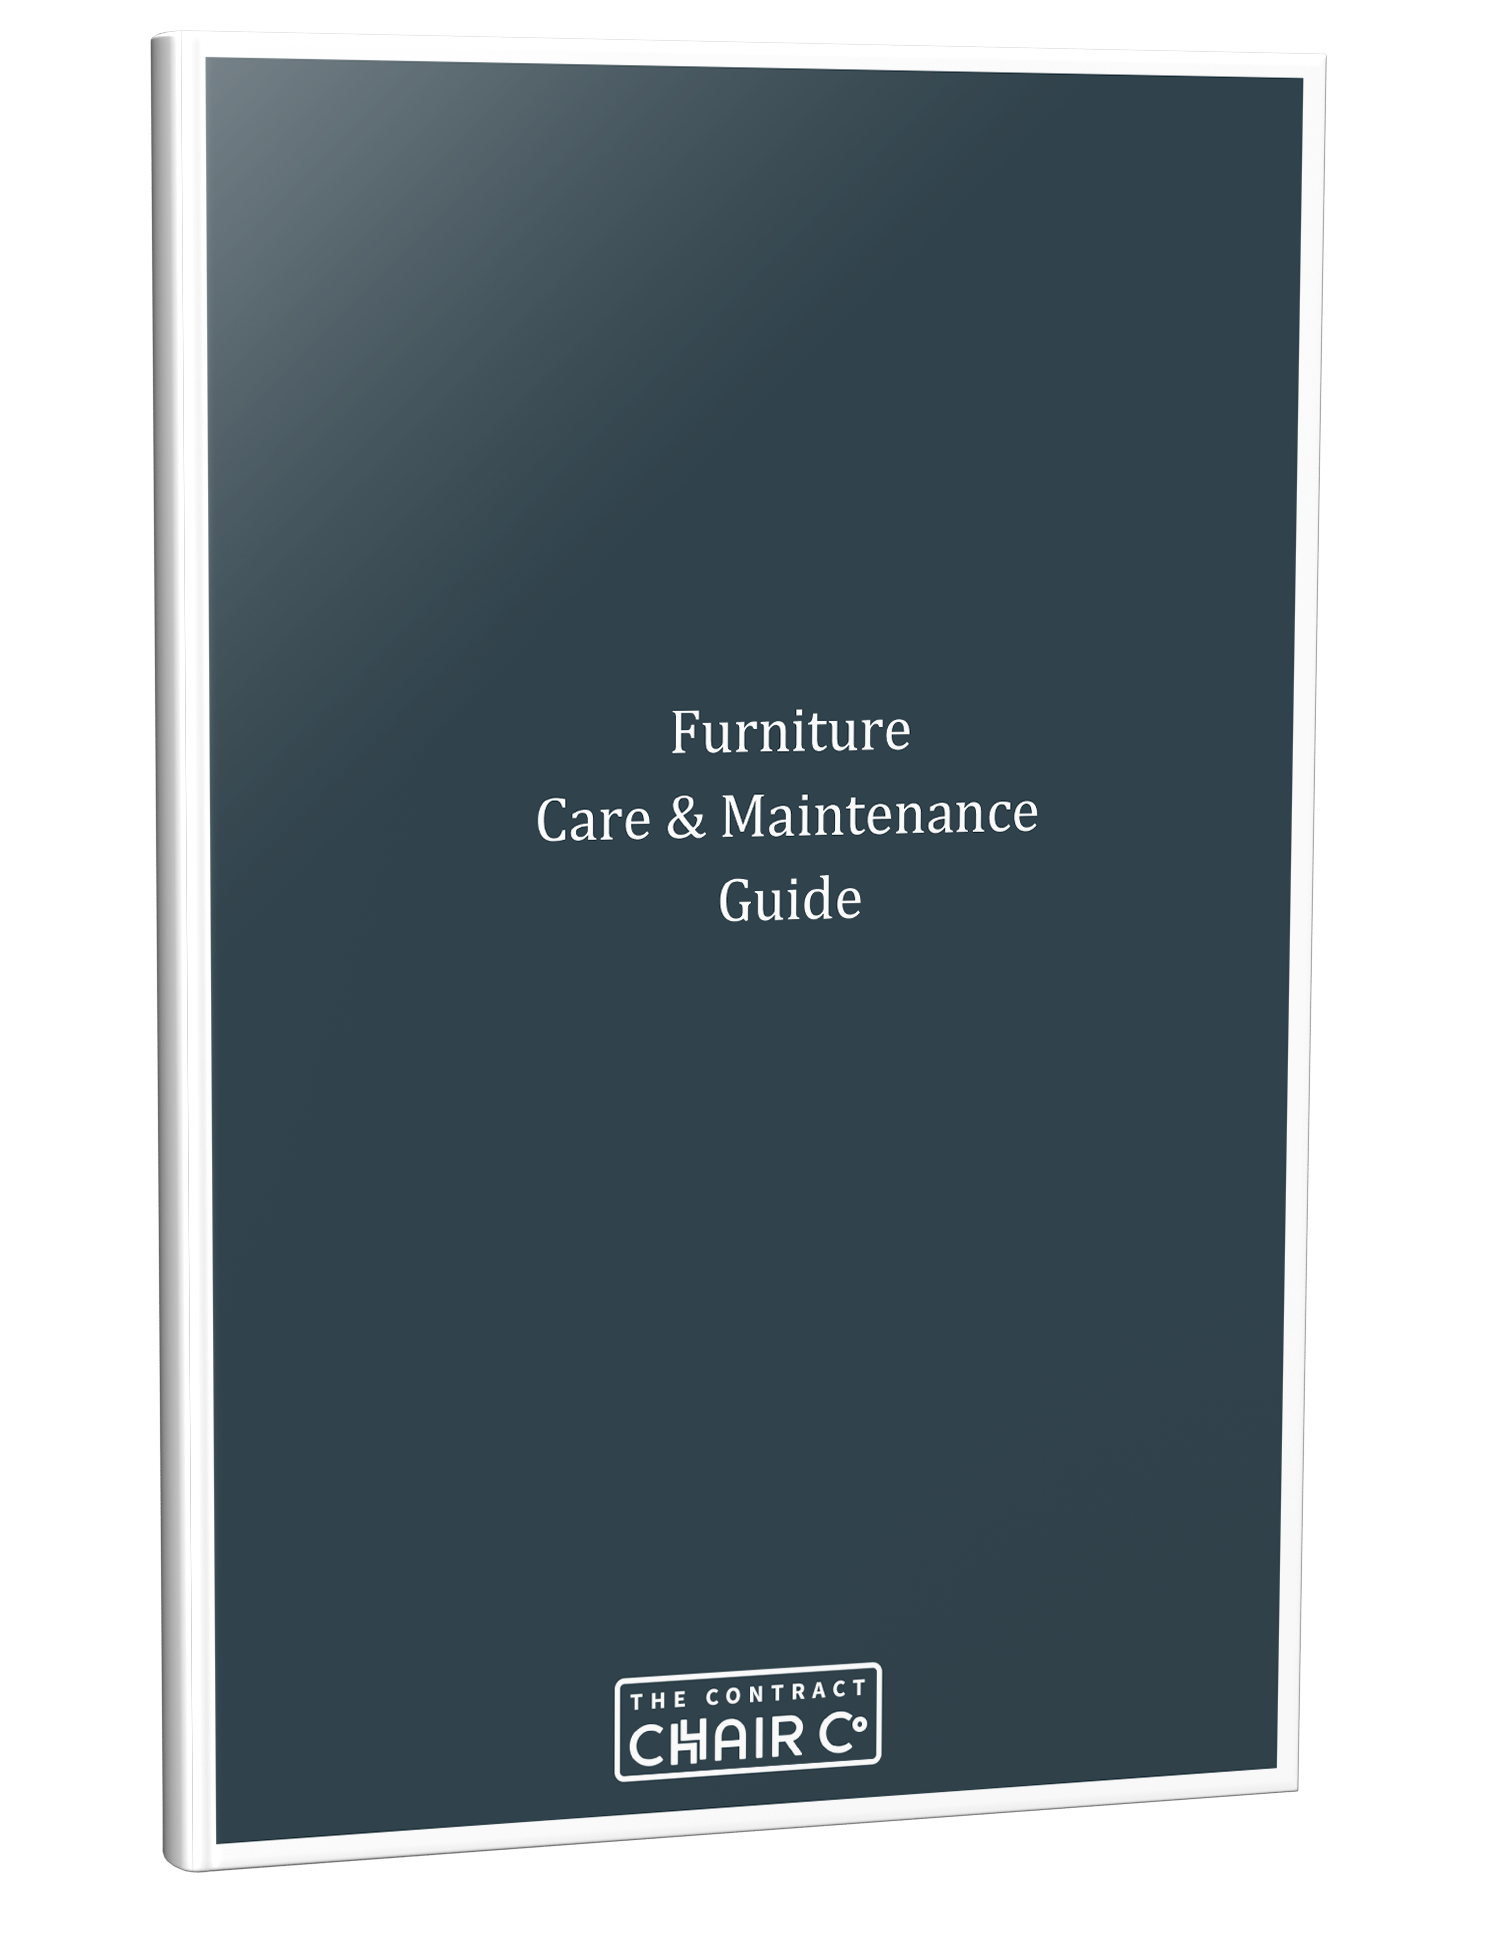 Furniture Care and Maintenance Guide